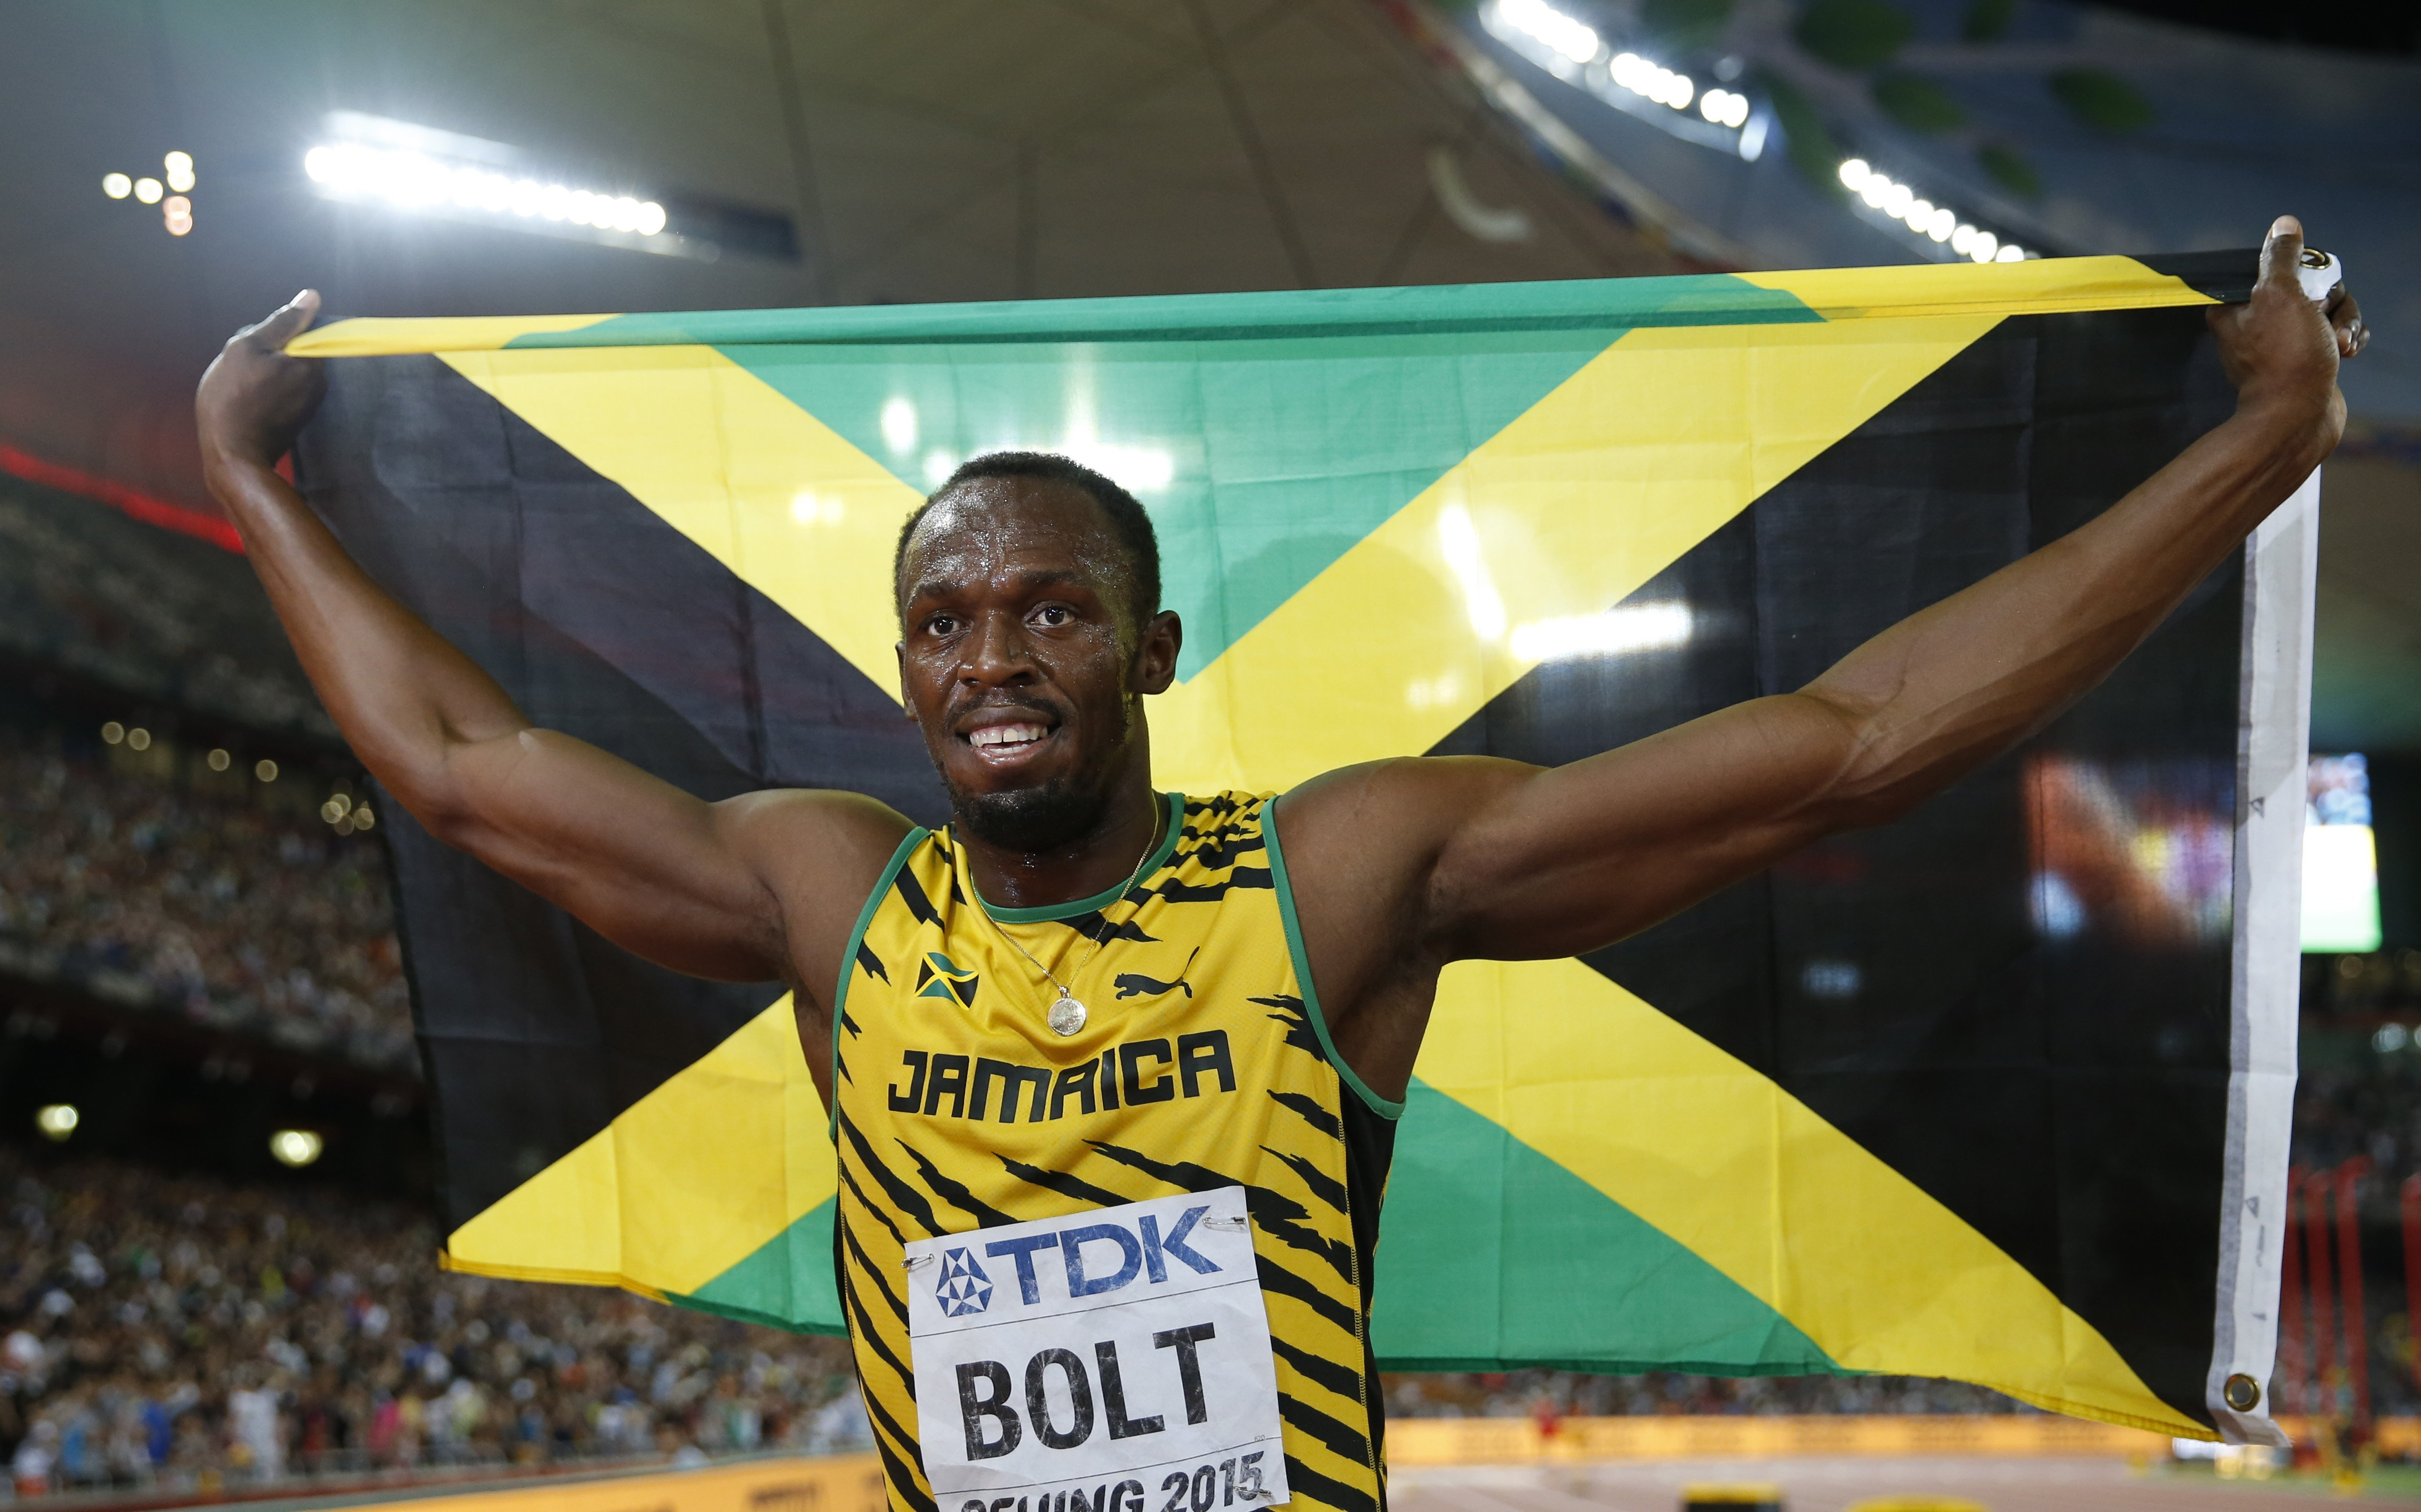 Jamaica's Usain Bolt celebrates after winning the gold medal in the men's 100m ahead of United States' at the World Athletics Championships at the Bird's Nest stadium in Beijing on Aug. 23, 2015.